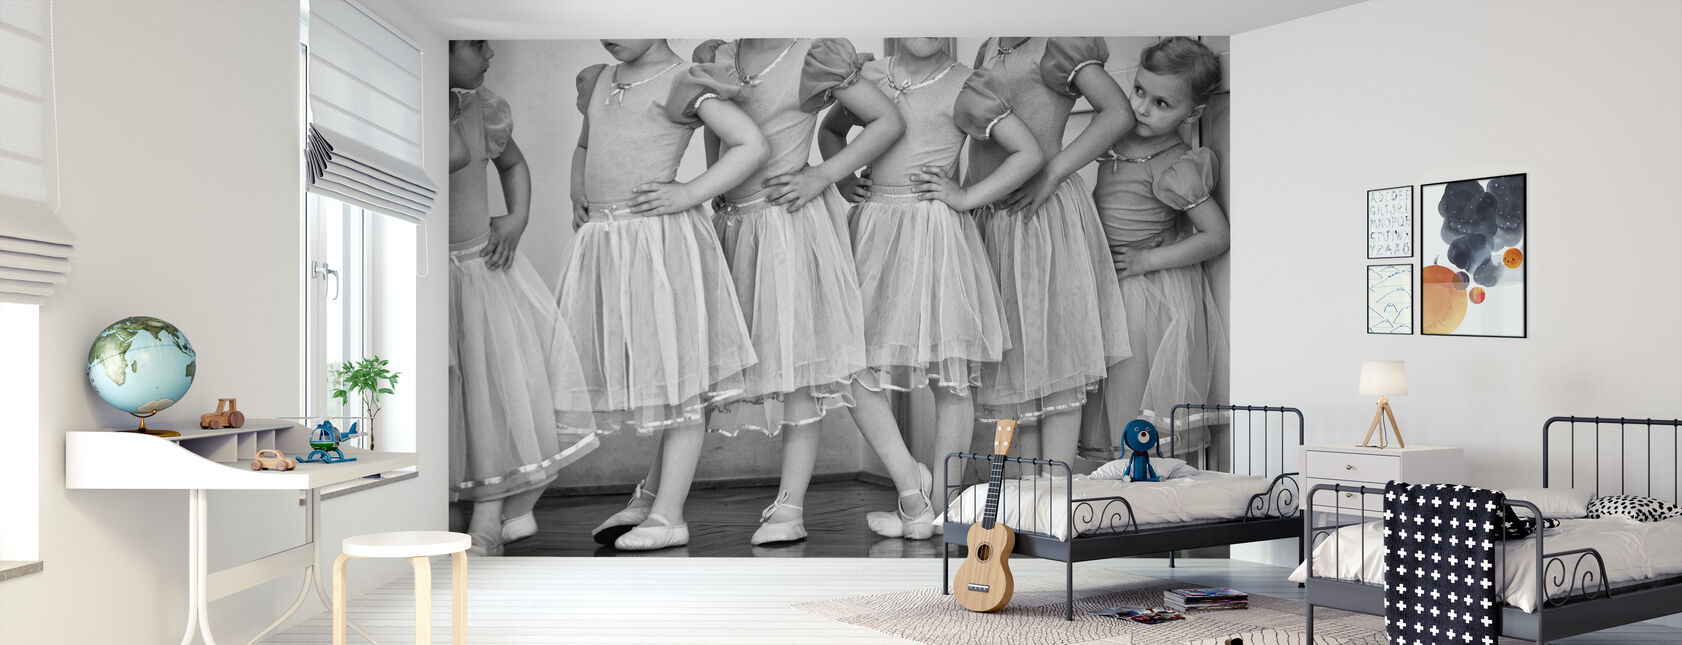 Ballerina - Behang - Kinderkamer